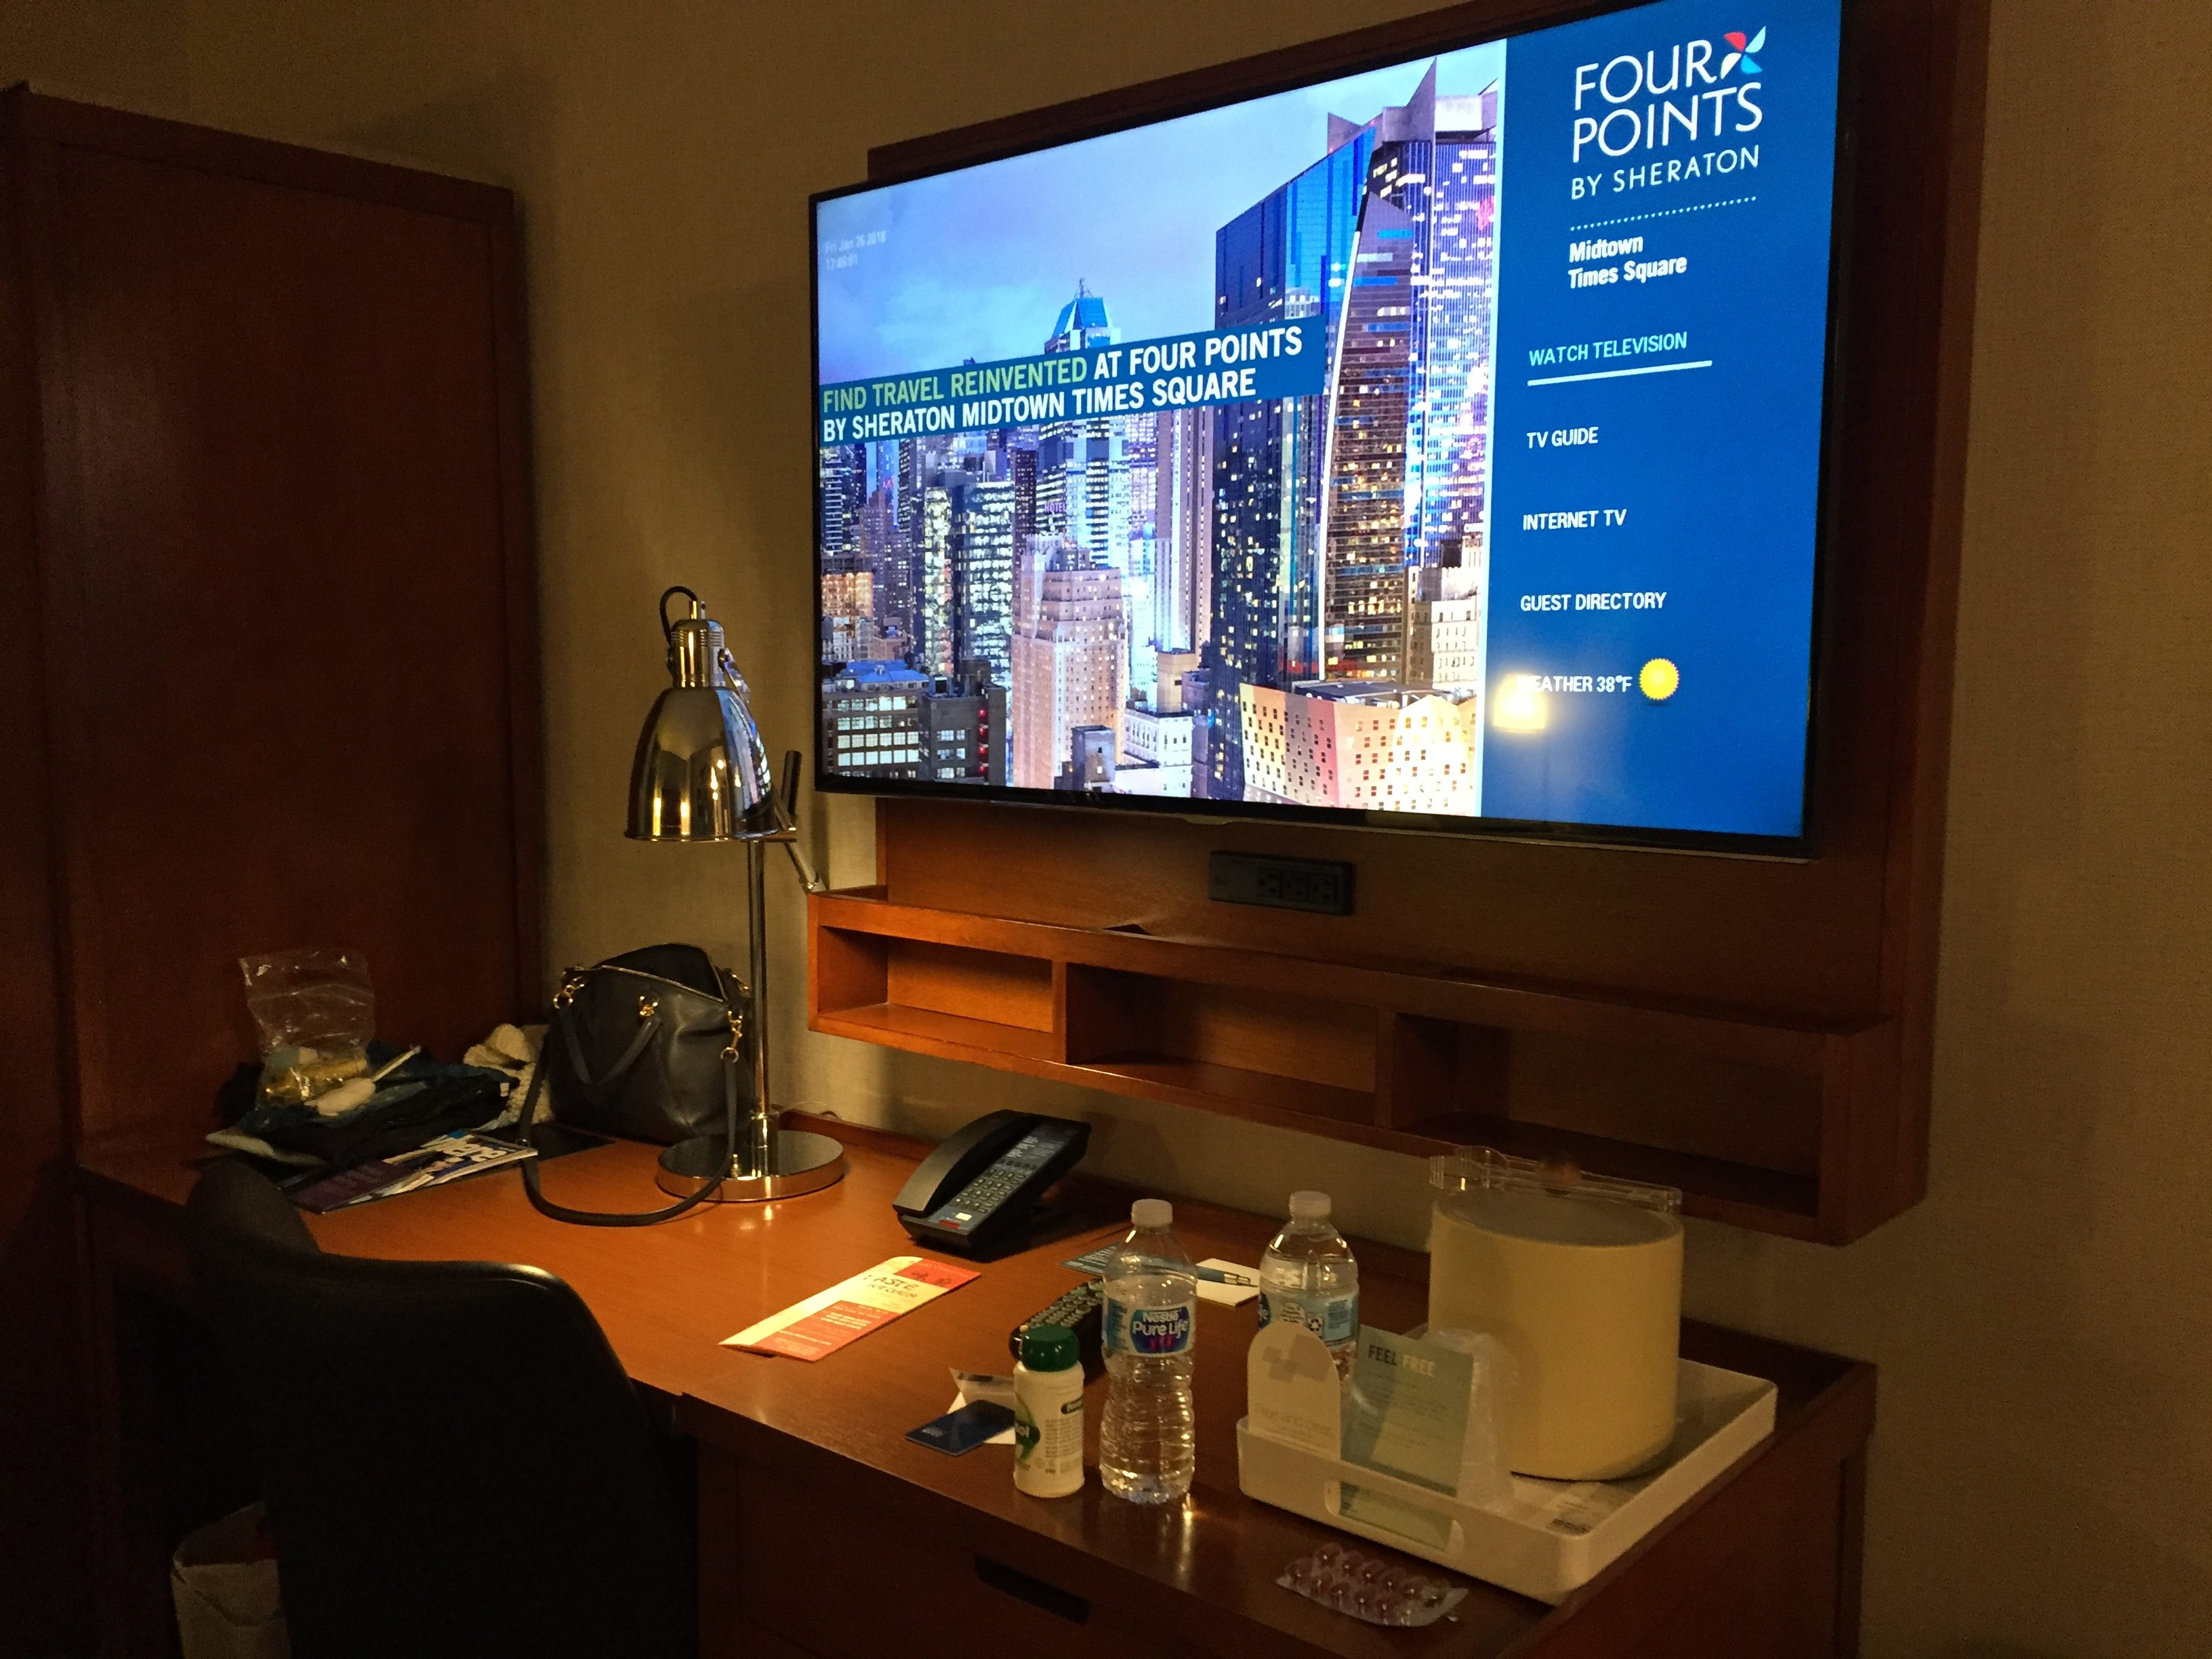 IMG 35431 e1517837393777 - El Hotel Four Points by Sheraton en Manhattan New York